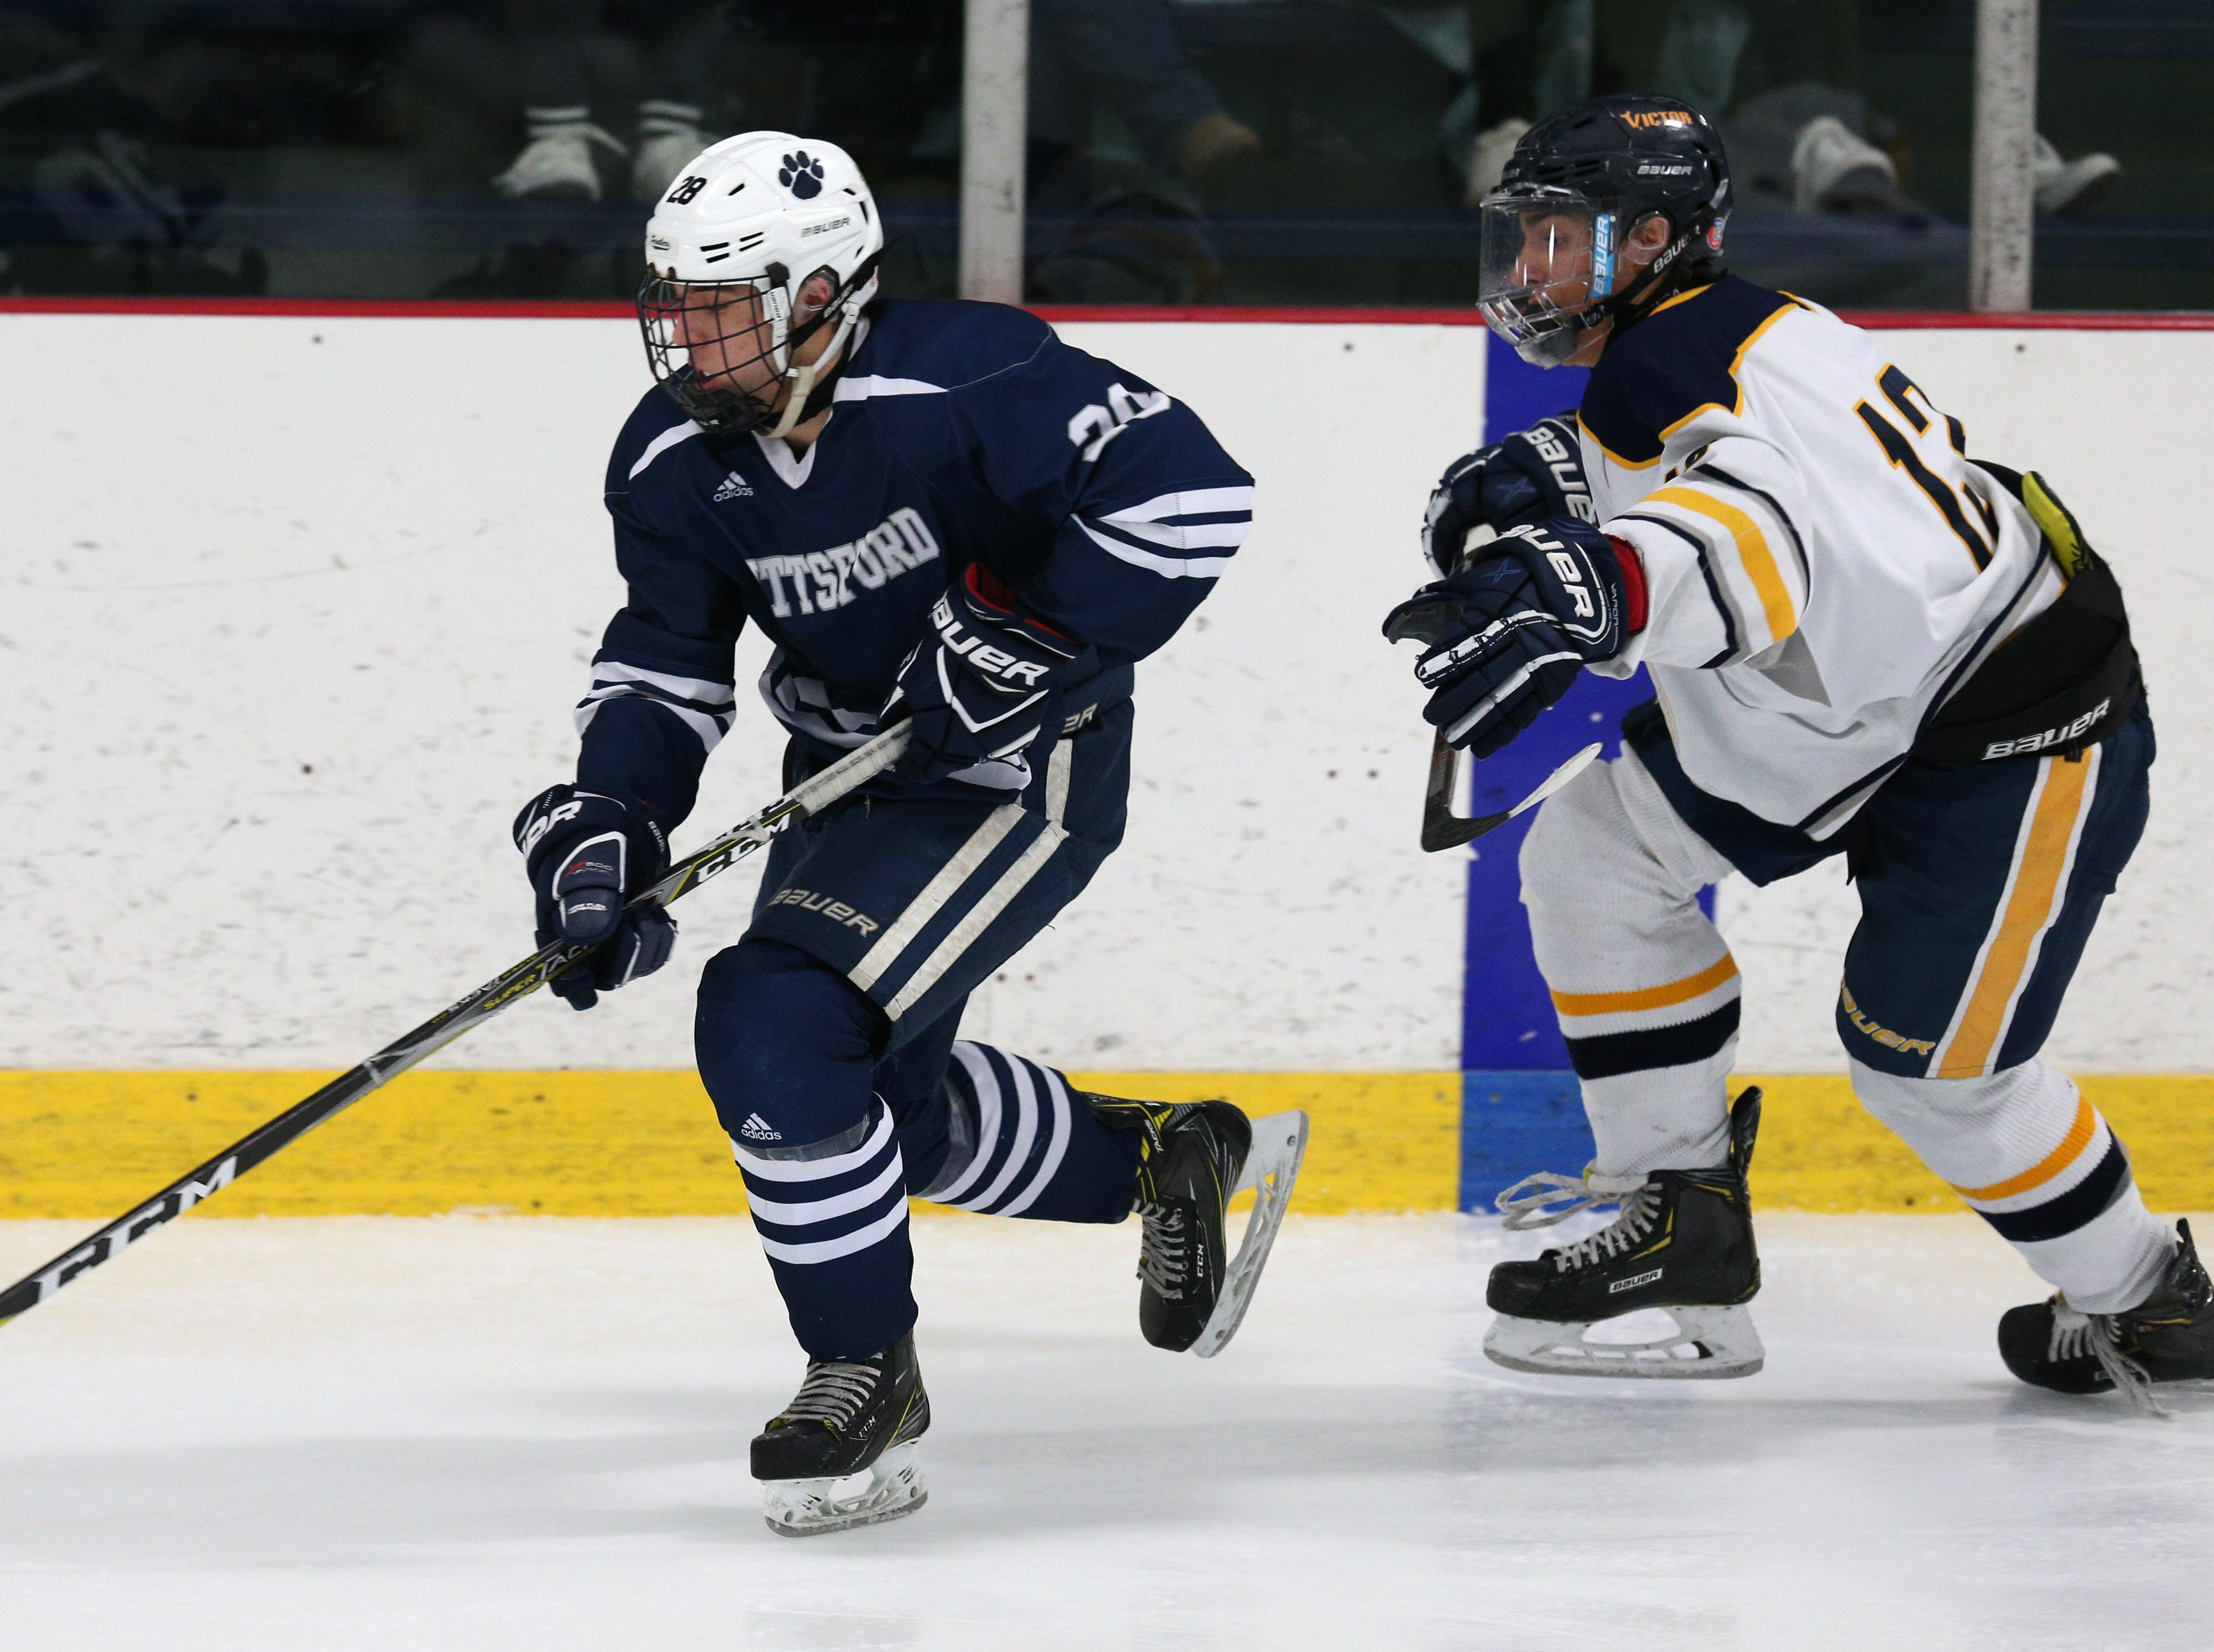 Pittsford #28 Shawn Alexander against Victor # 13 Jack McCandless.